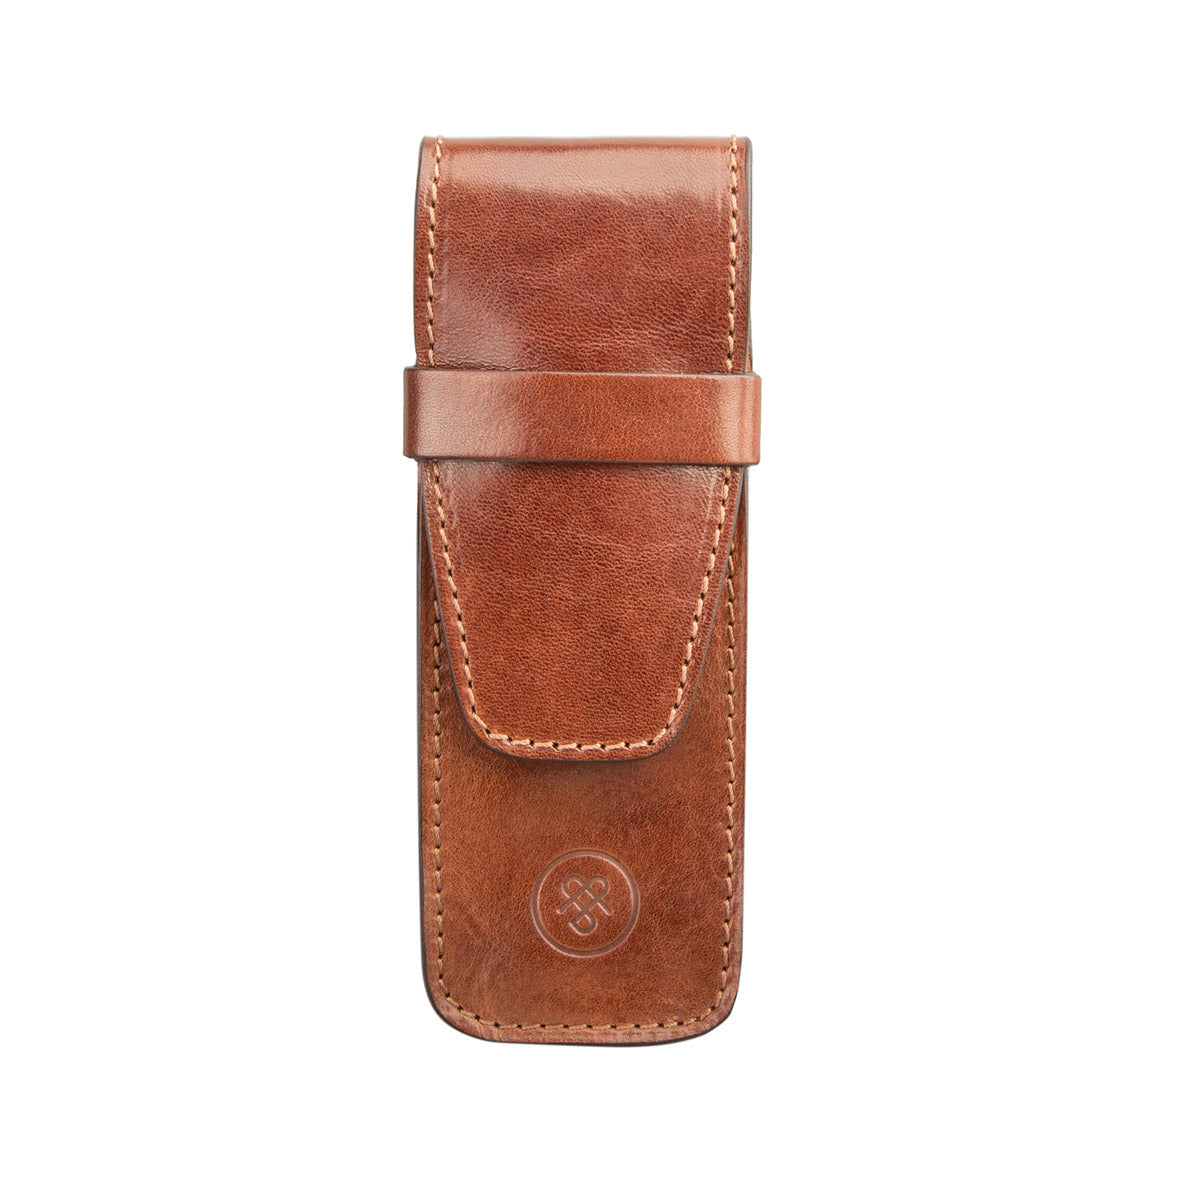 Image 1 of the 'Pienza' Chestnut Veg-Tanned Leather Pen Case